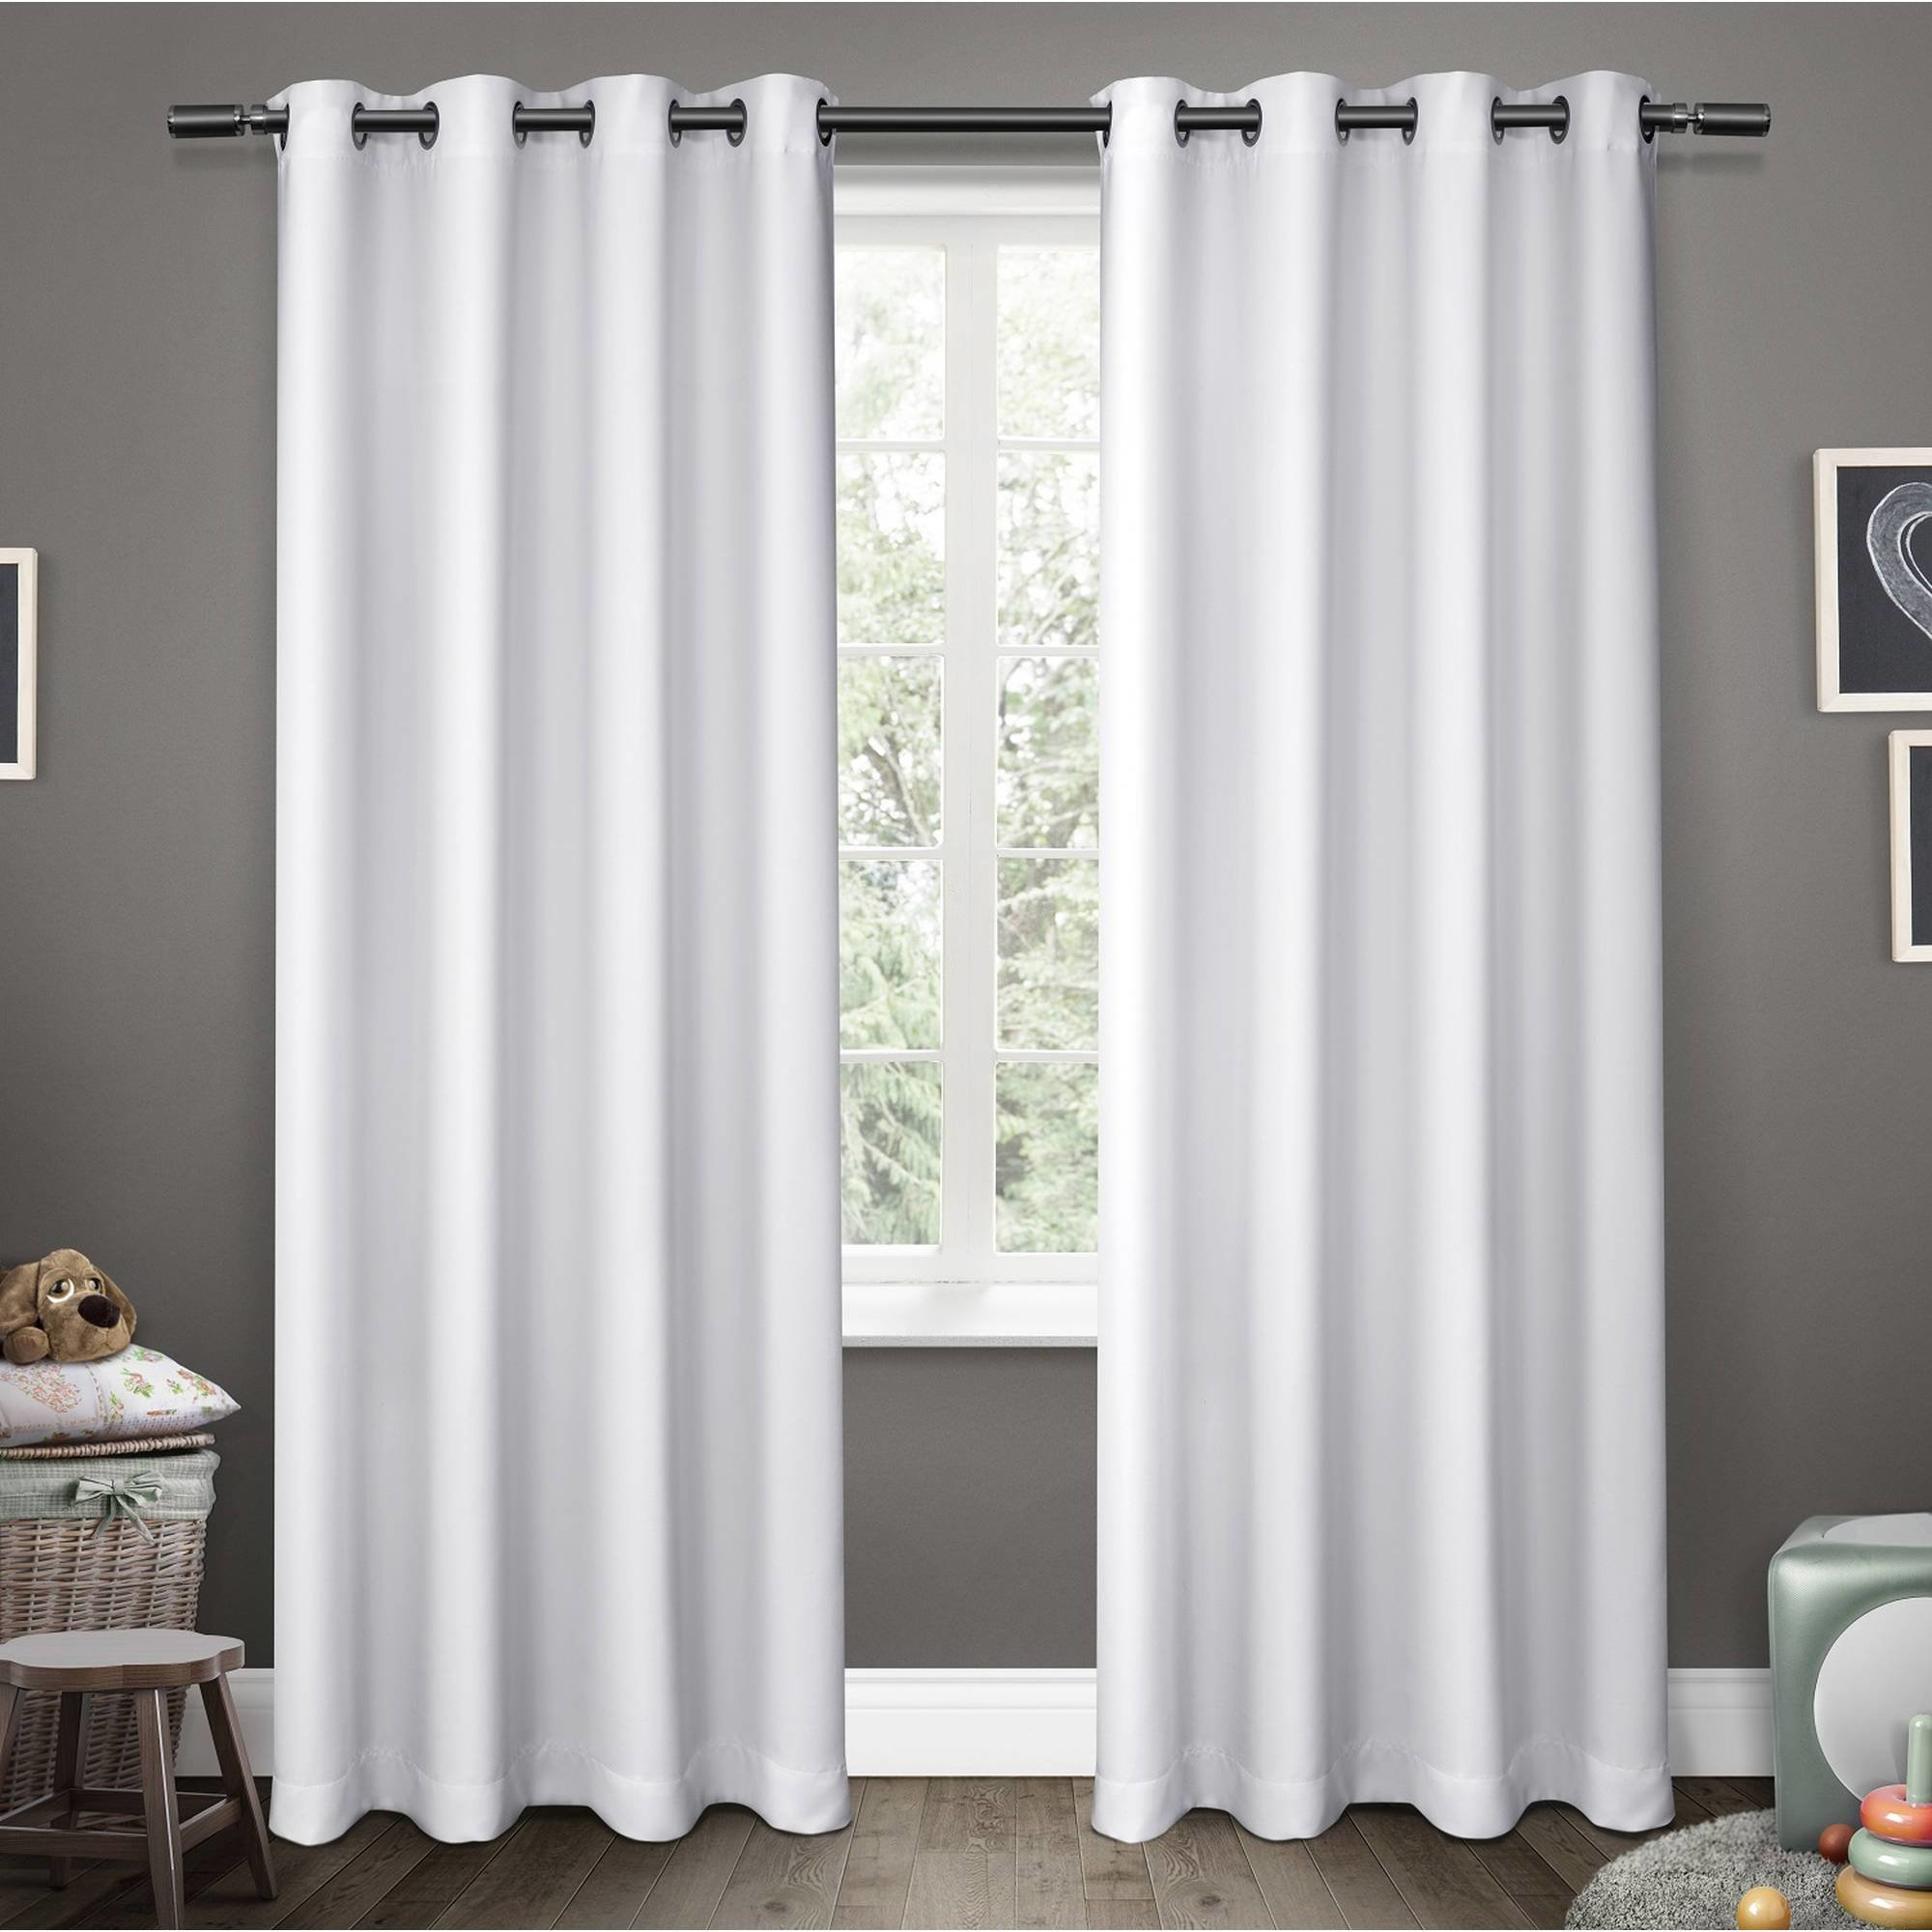 Best Curtain Charming Home Interior Accessories Ideas With With Pictures